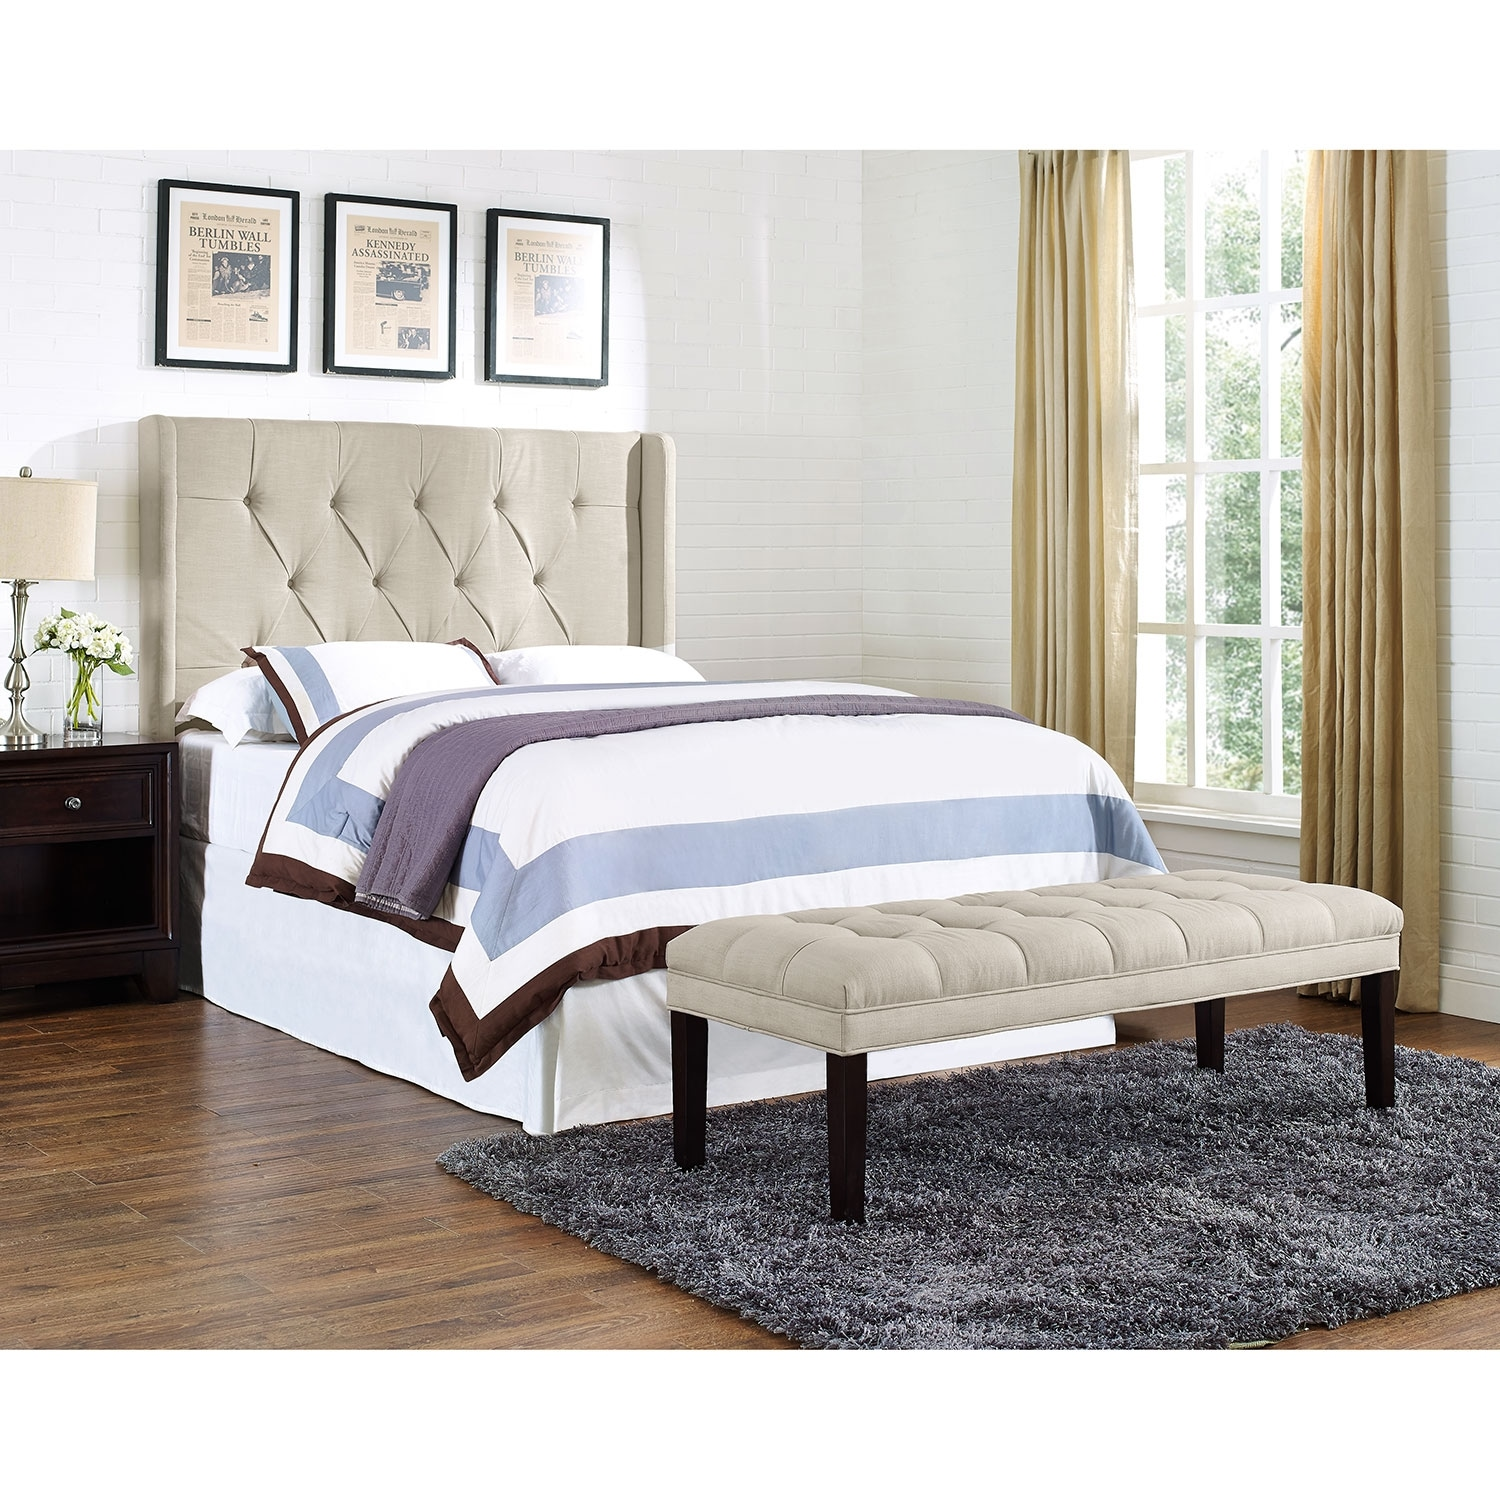 value city headboards winston king california king headboard value city 13709